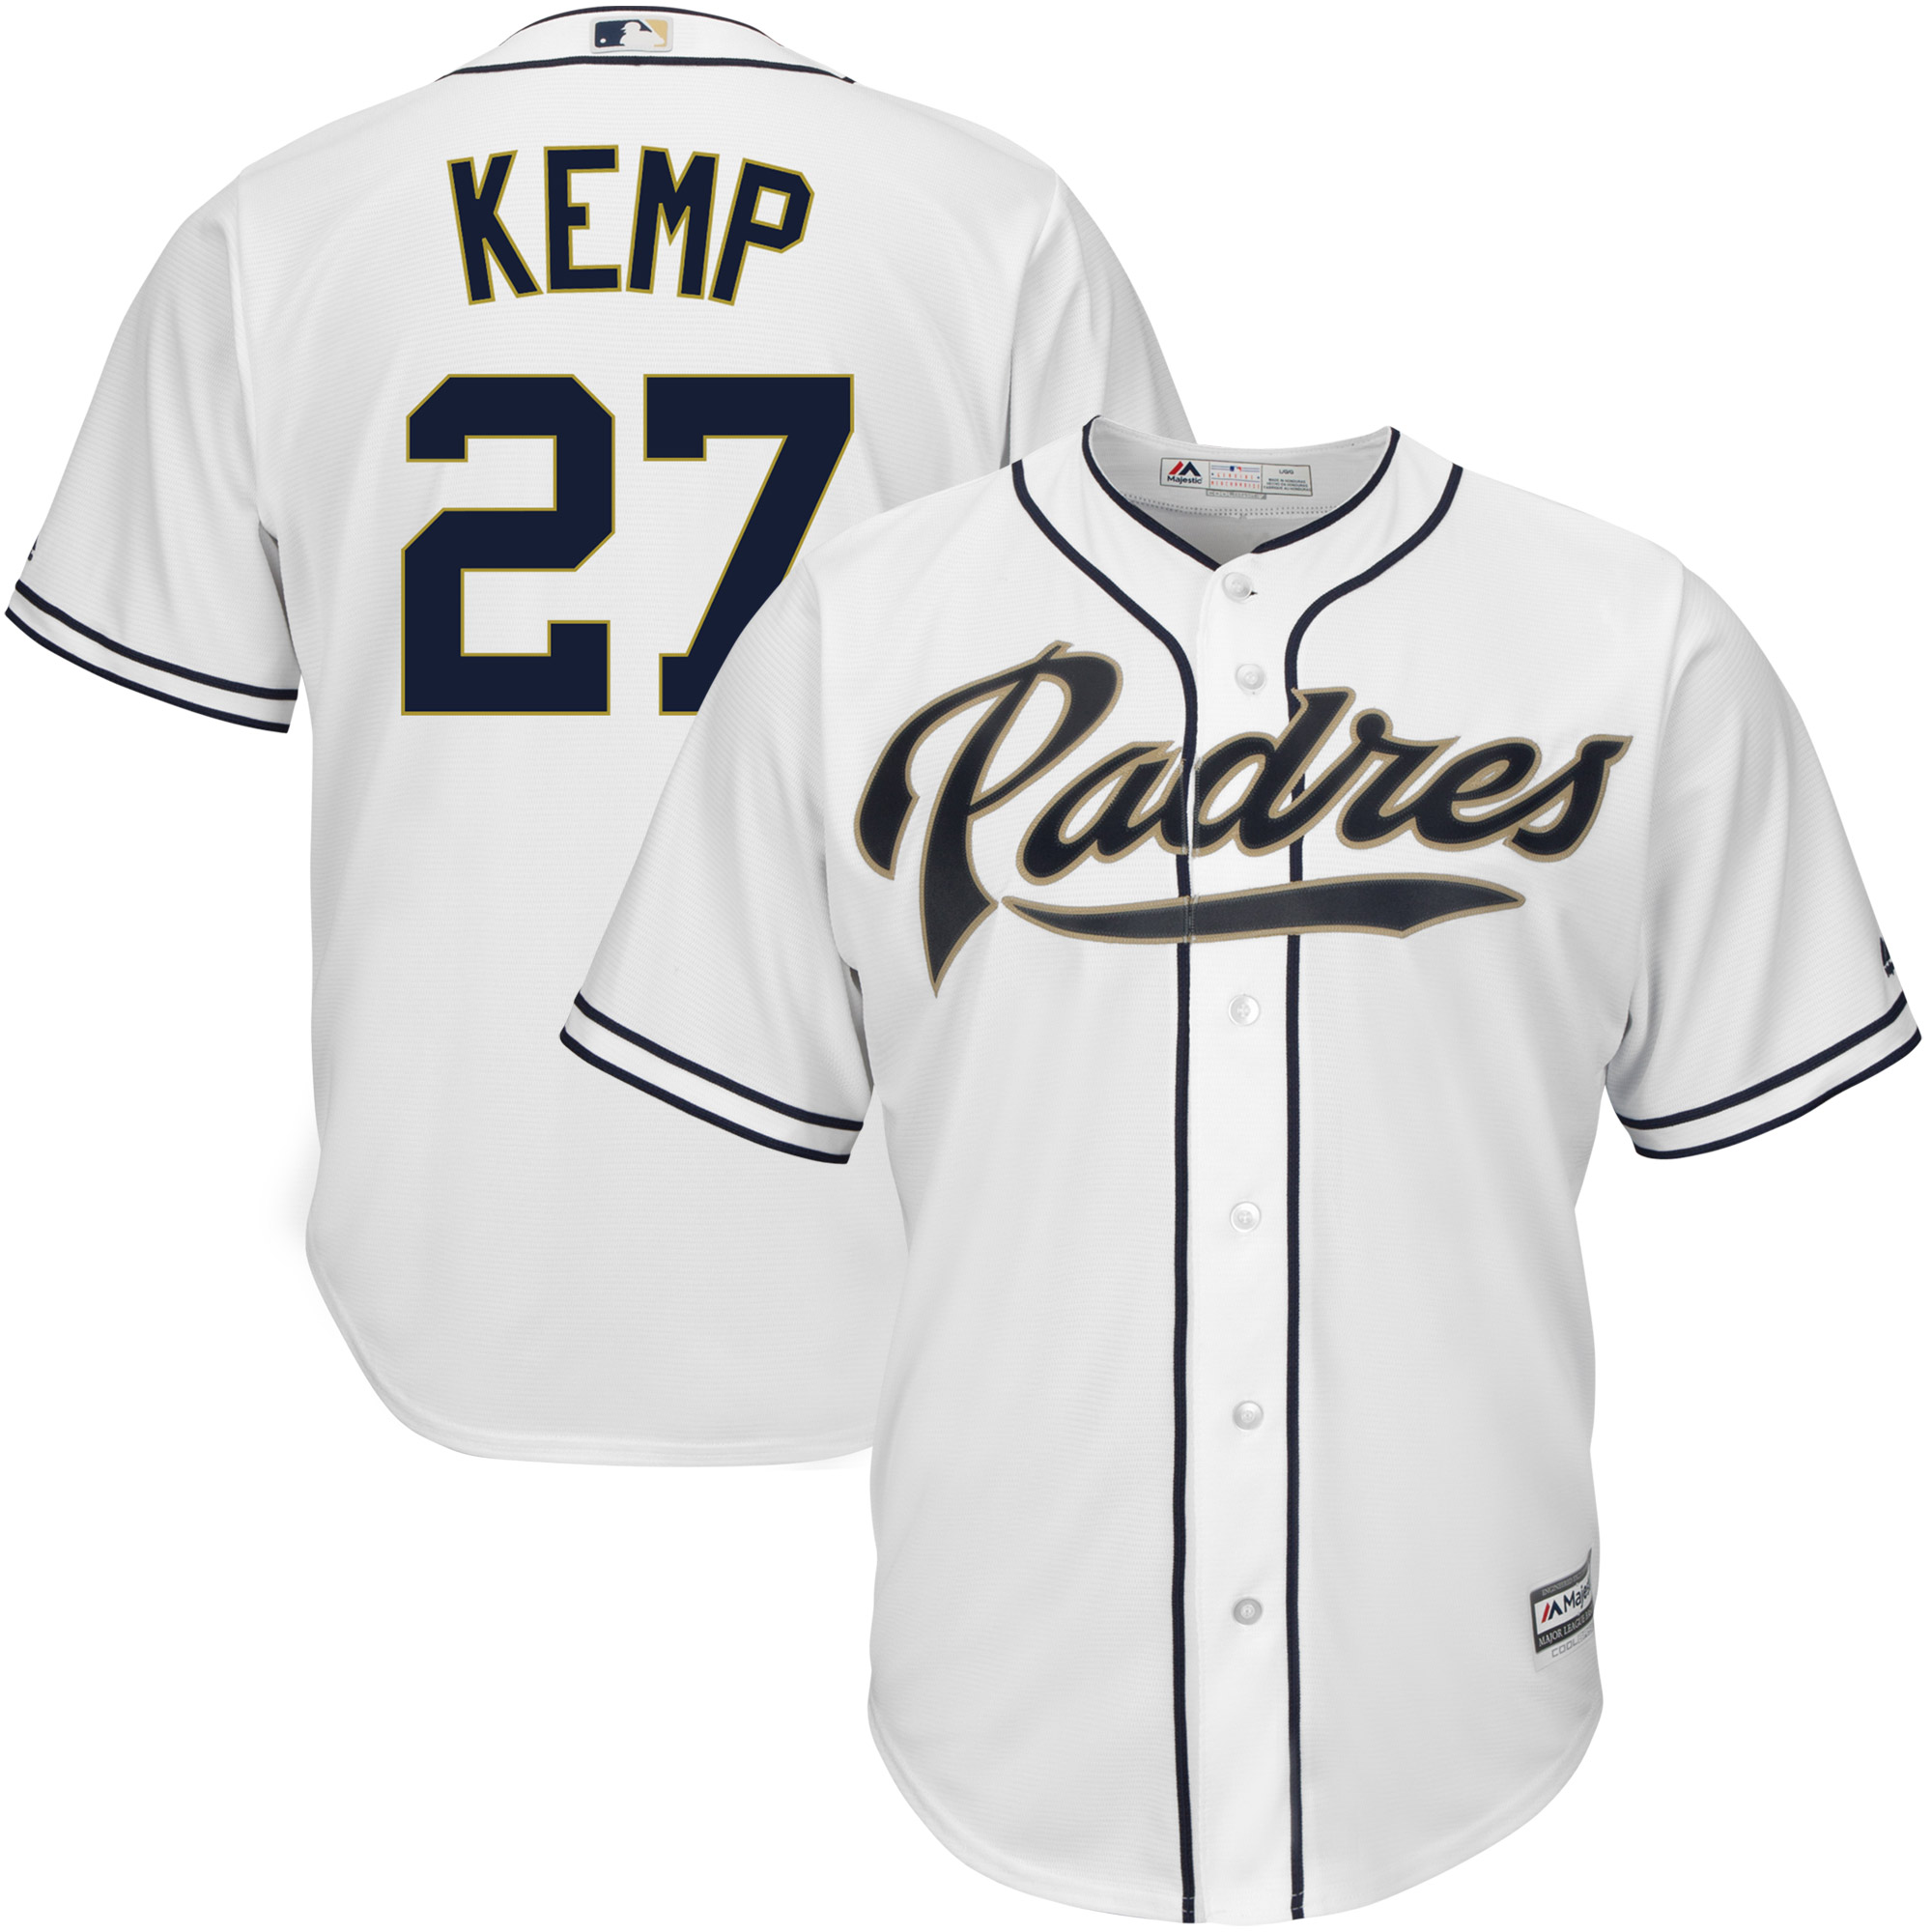 Men's Majestic Matt Kemp White San Diego Padres Big & Tall Official Cool Base Player Jersey